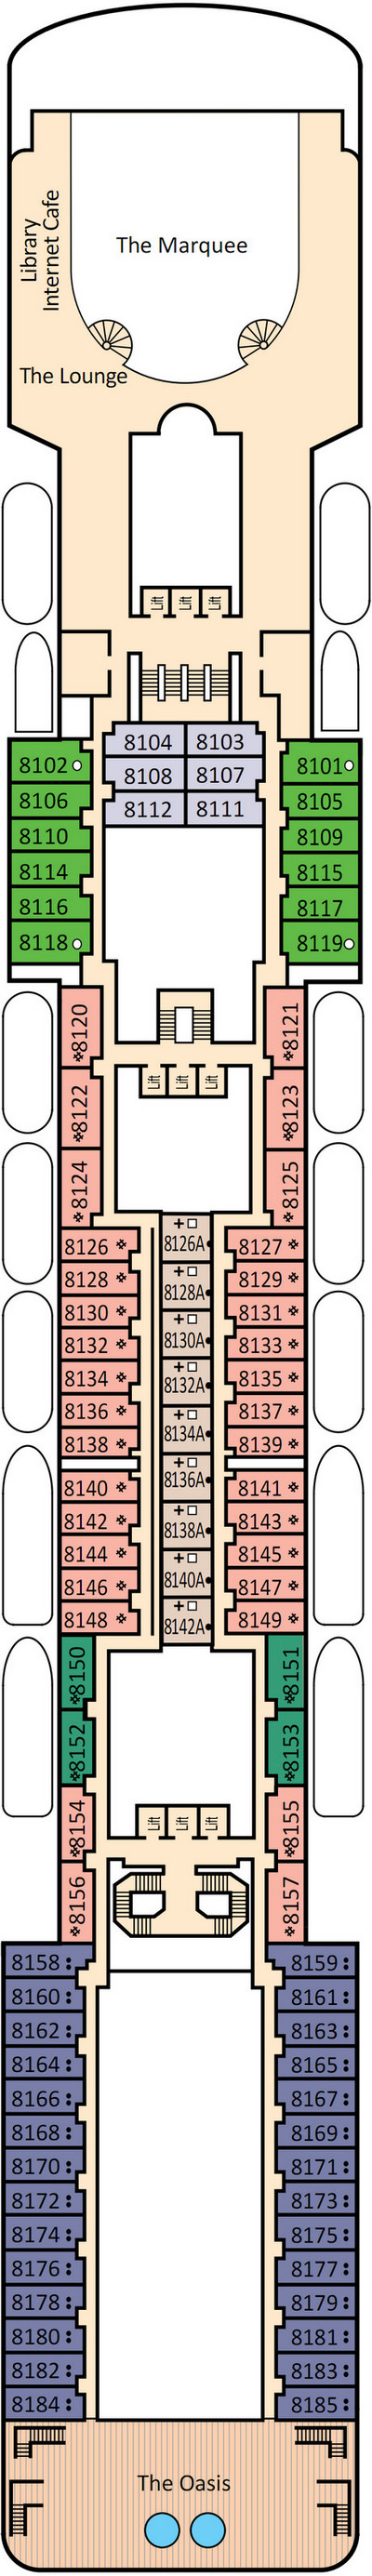 P&O - Pacific Pearl Deck 8 layout